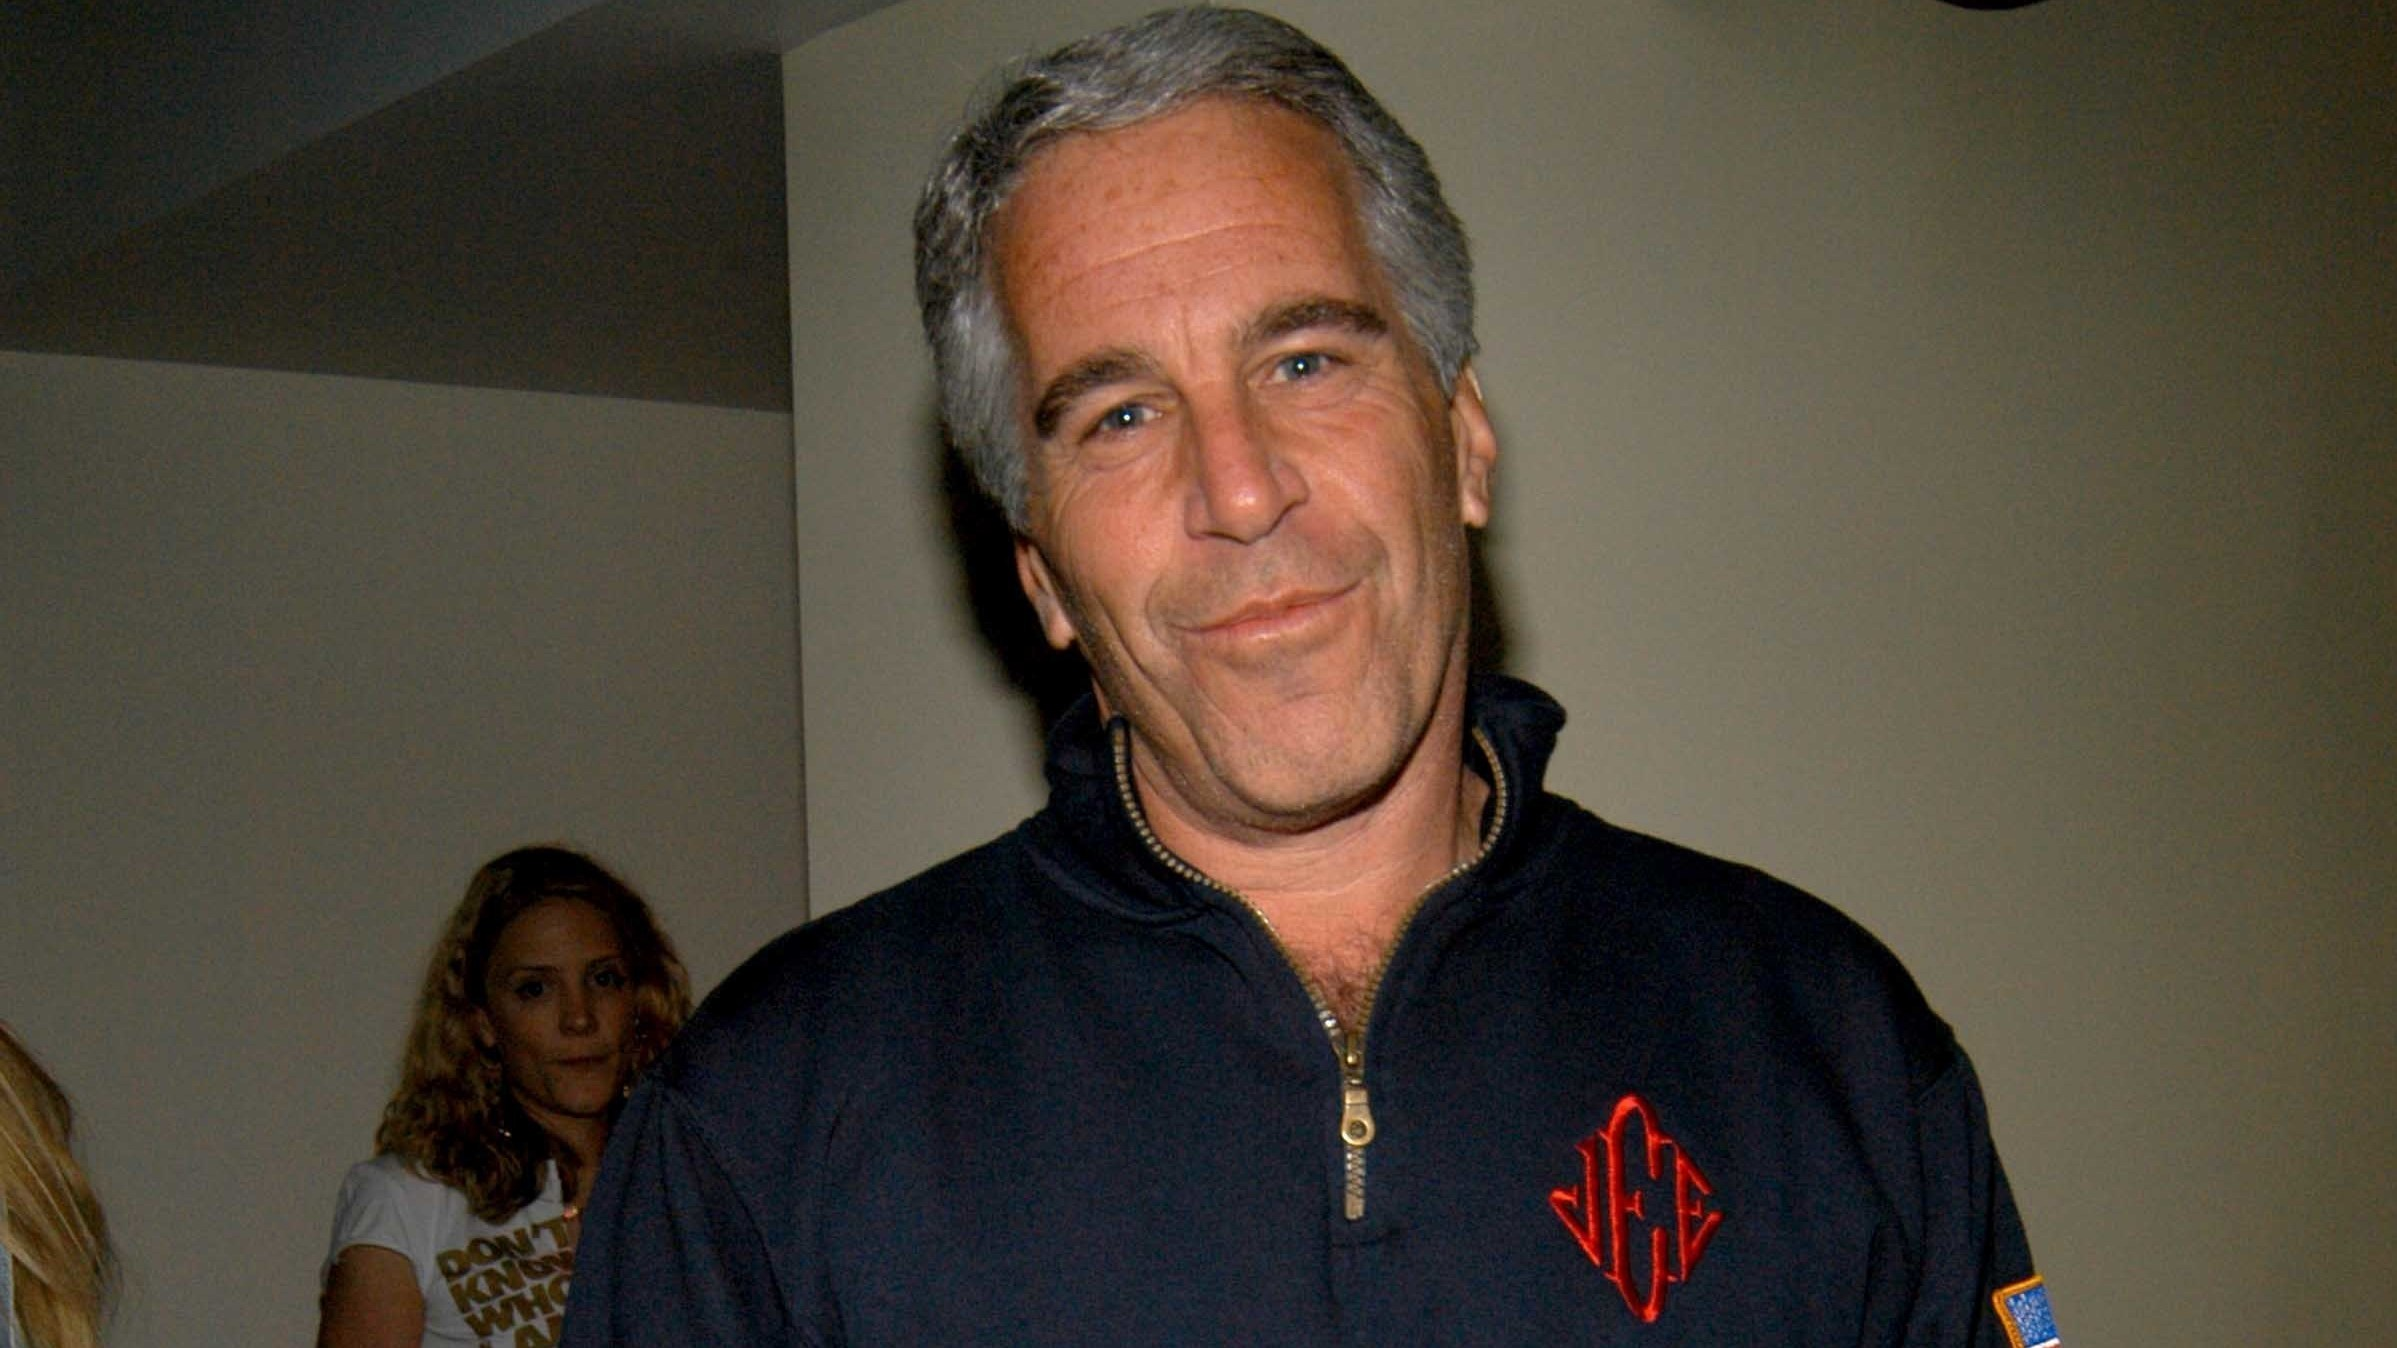 A Young Jeffrey Epstein Made An Impression On His High School Students